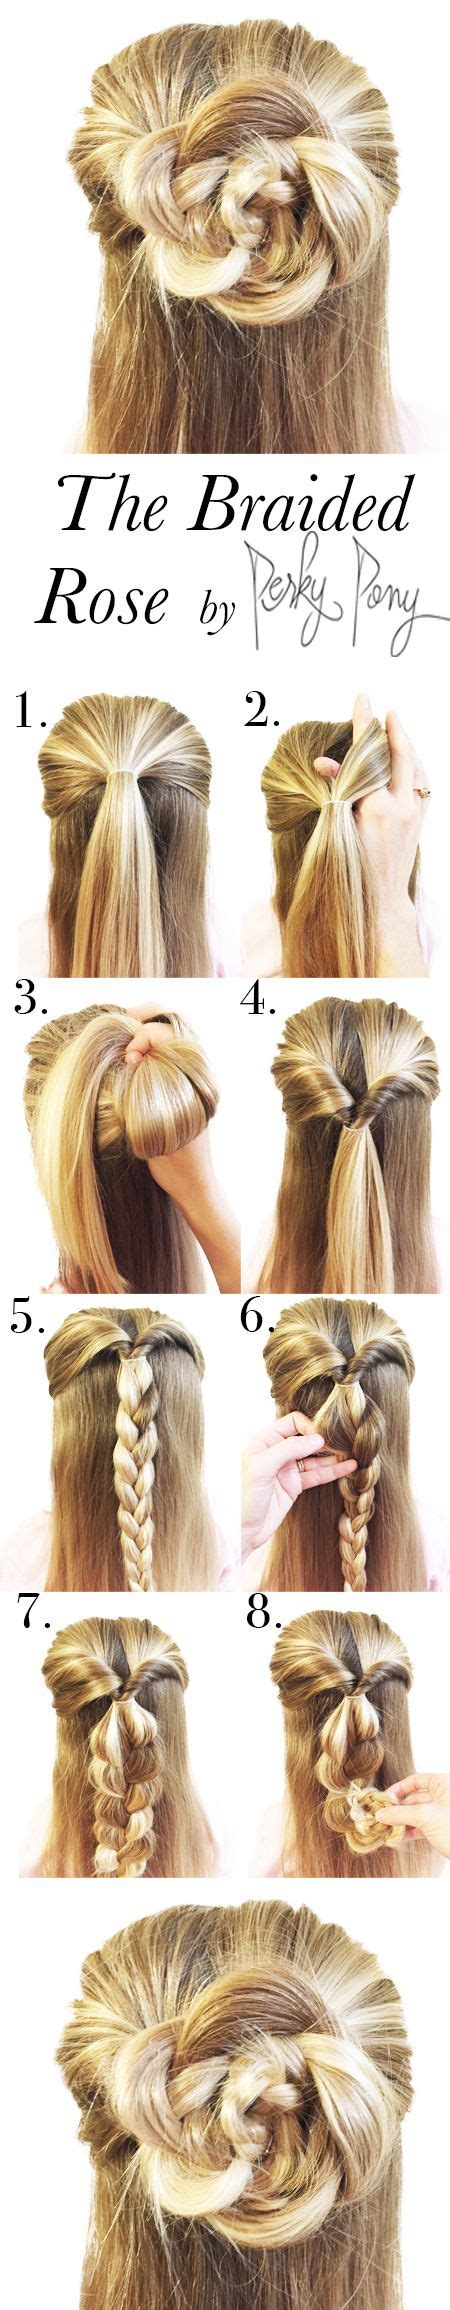 Eazy E Hairstyle by 20 Simple And Easy Hairstyles For Your Daily Look Pretty